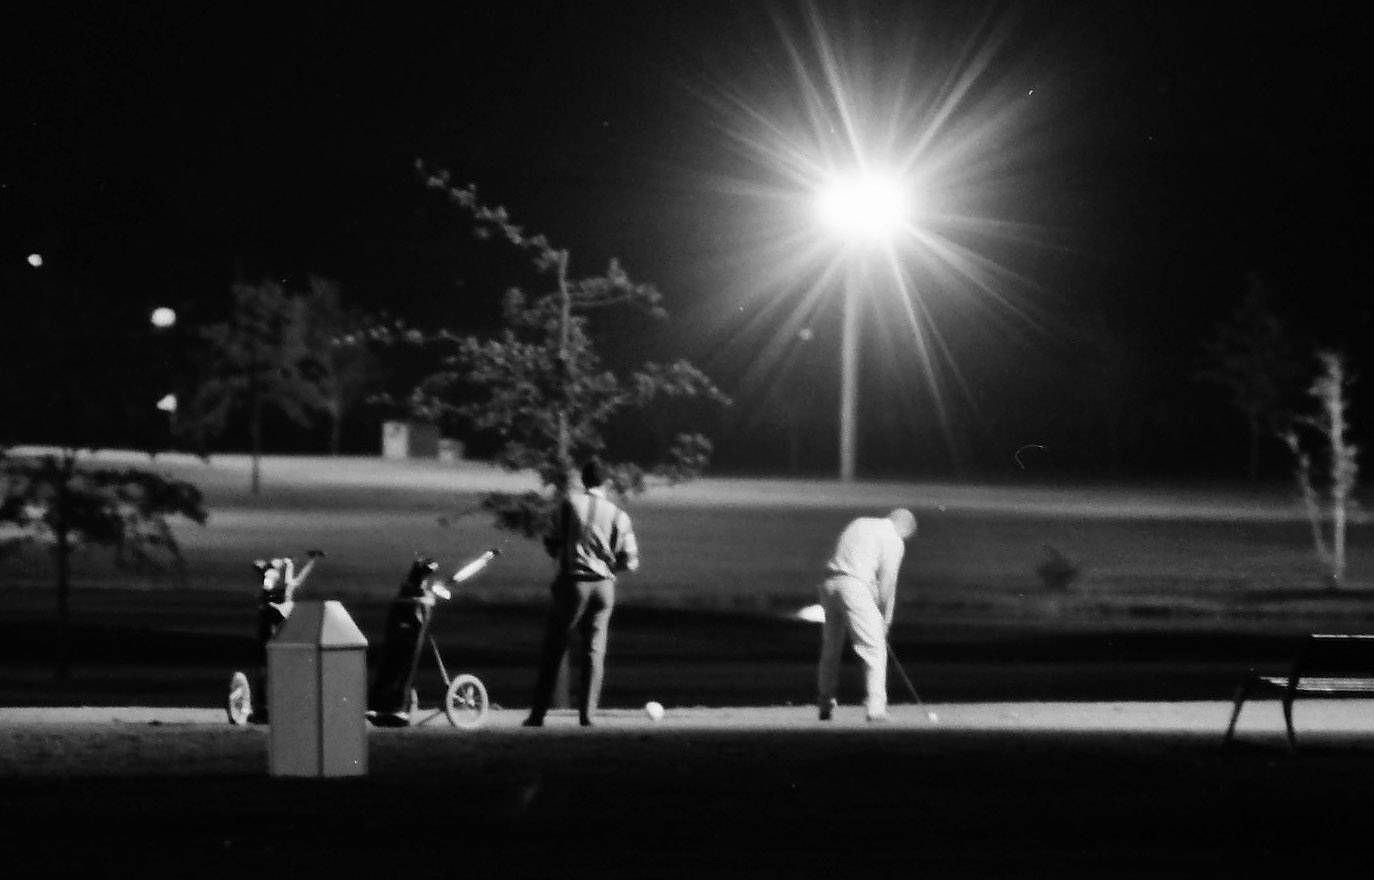 A couple of golfers trying their luck at night golf at Arlington Park in September of 1965.